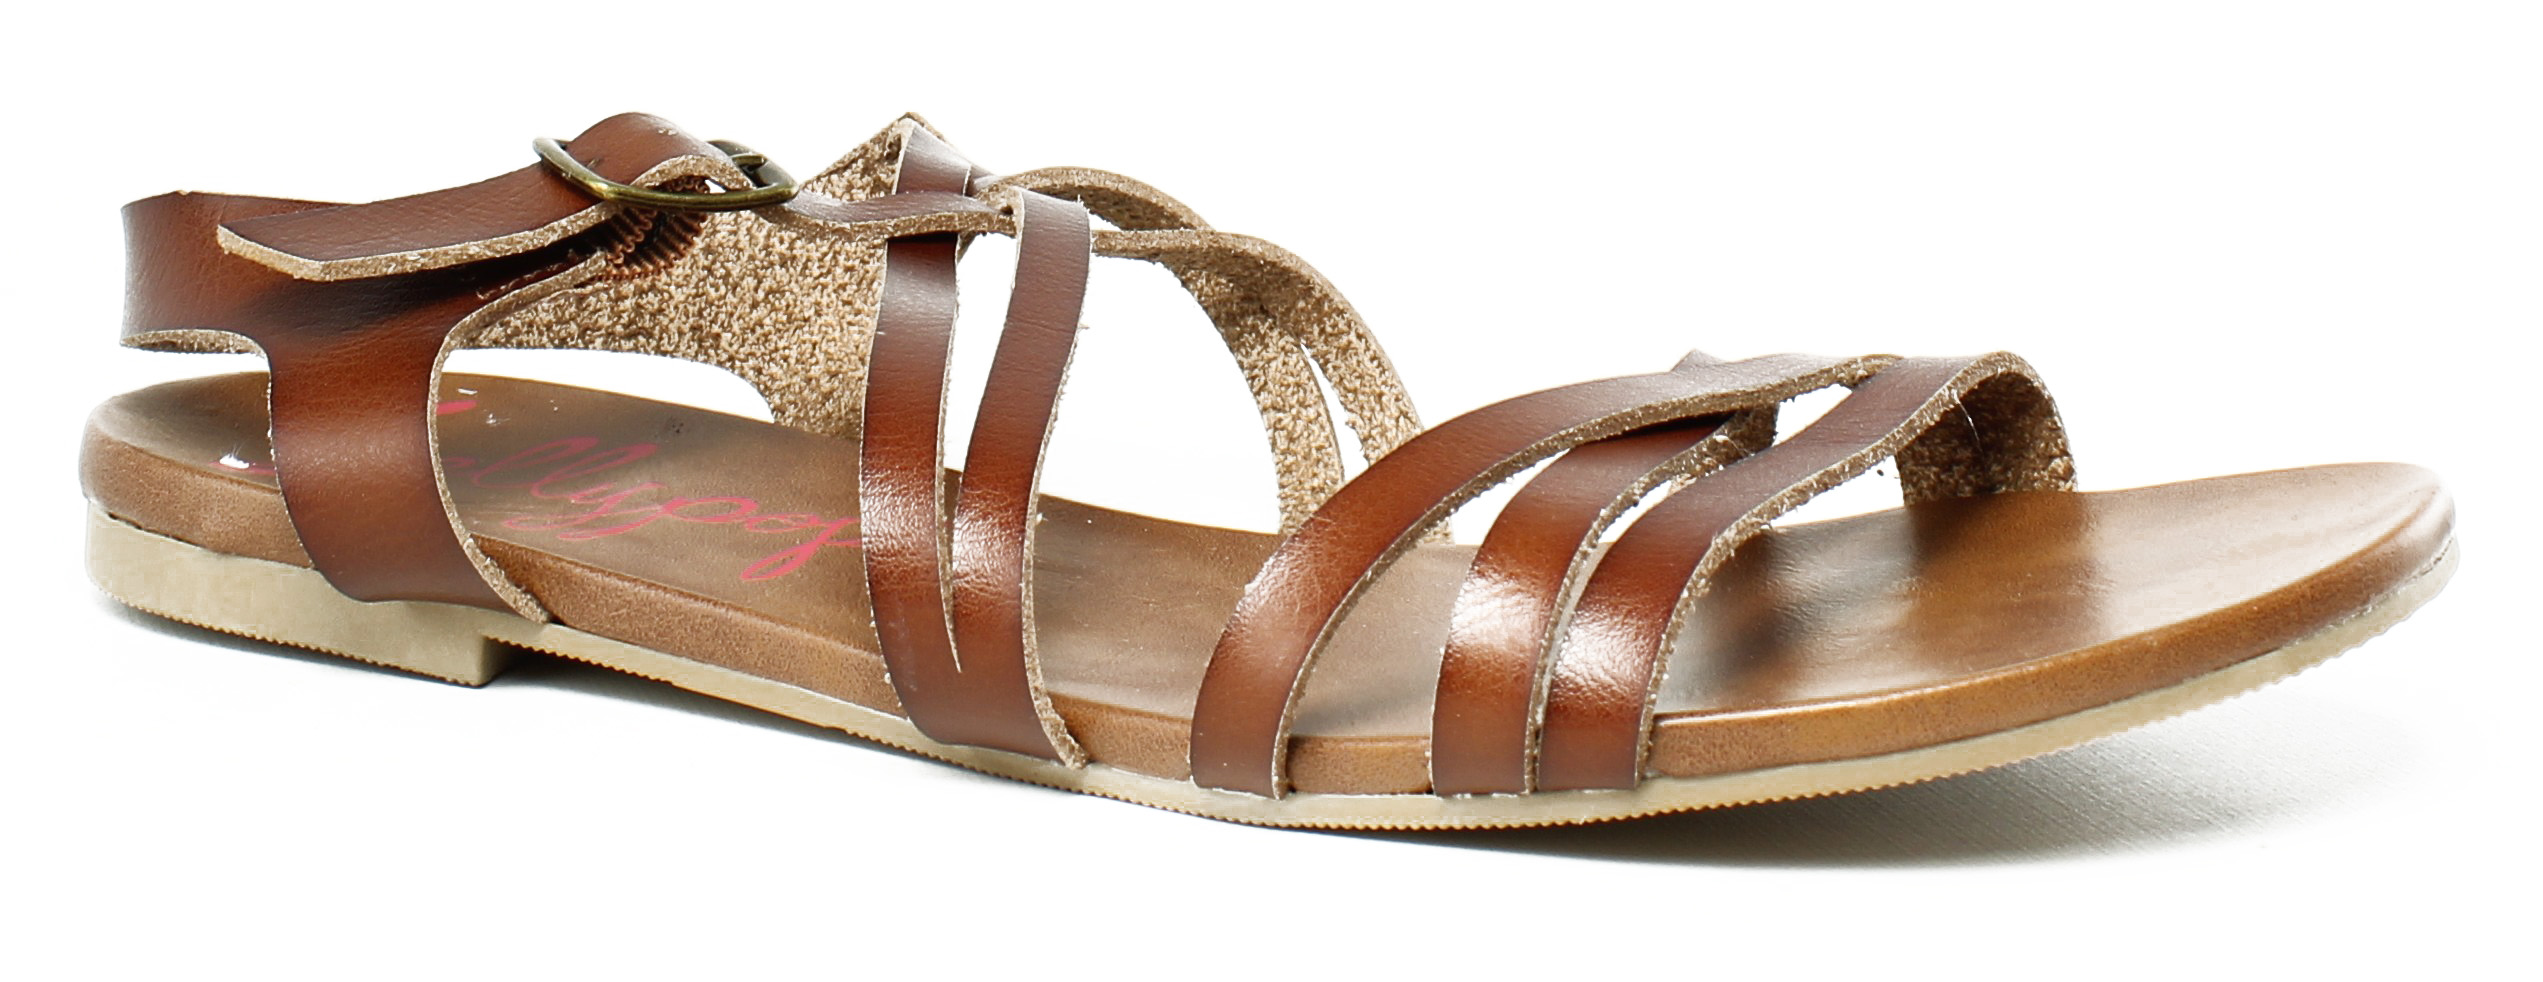 d9c9a20cf1f9 Jellypop Womens Jqgmsm276 CognacBrown Ankle Strap Flats Size 7.5 (375412)